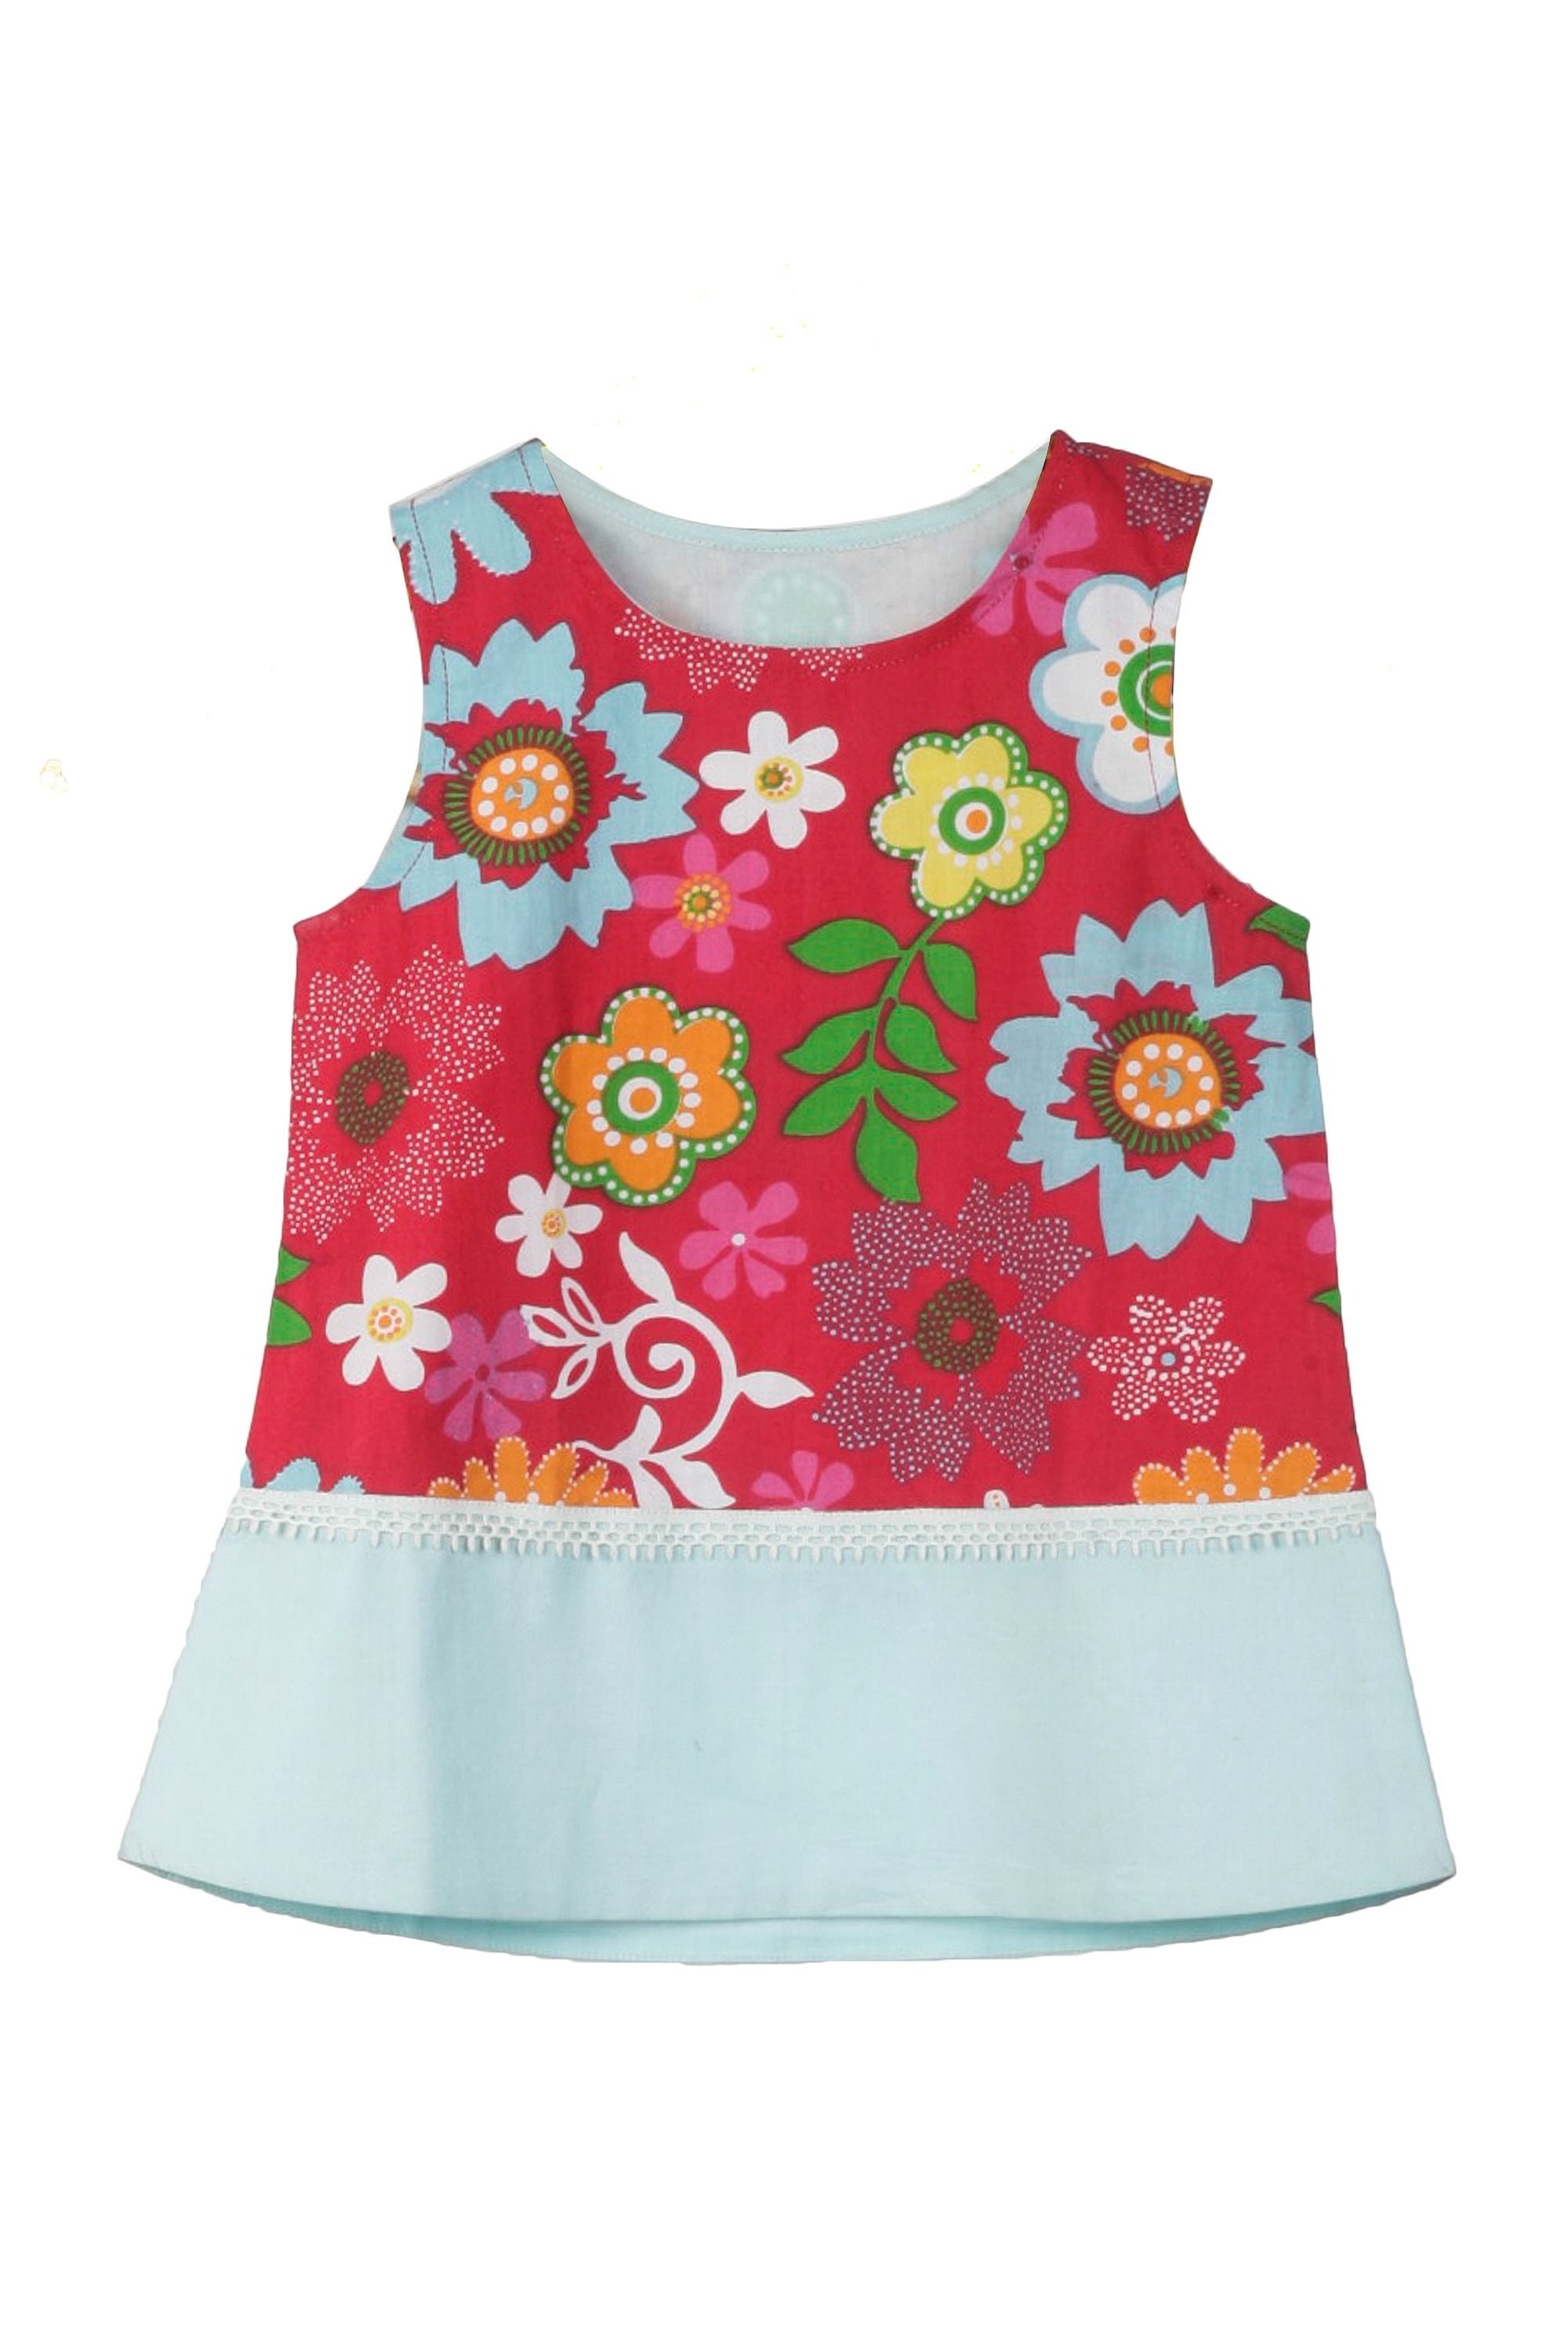 642f565f1eb37 This is kids clothing online shopping website. You can purchase fancy girls  clothes and new